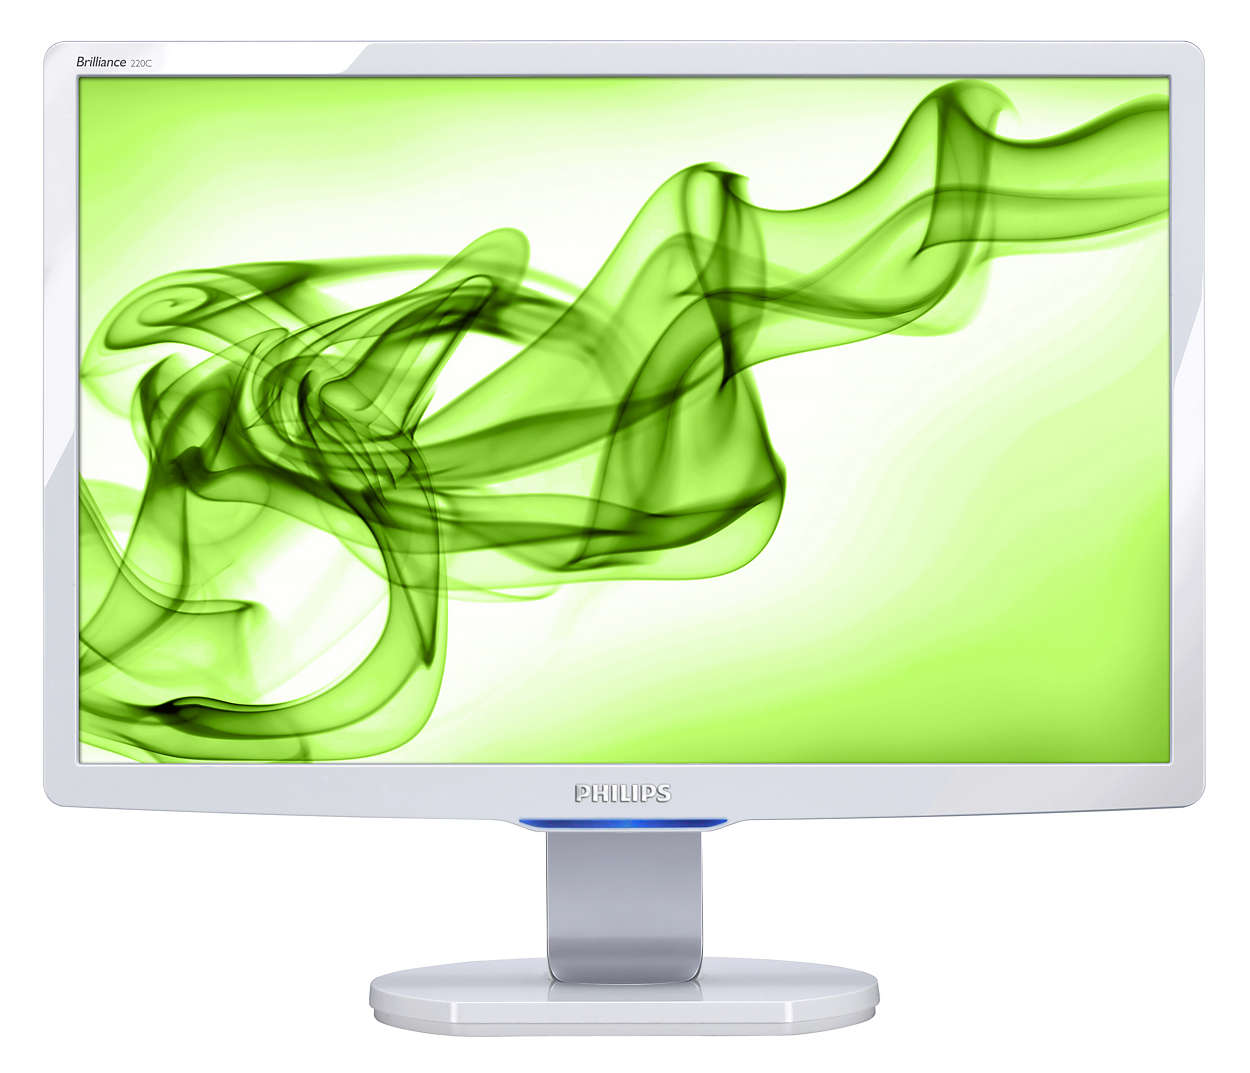 Stylish feature packed display for computainment